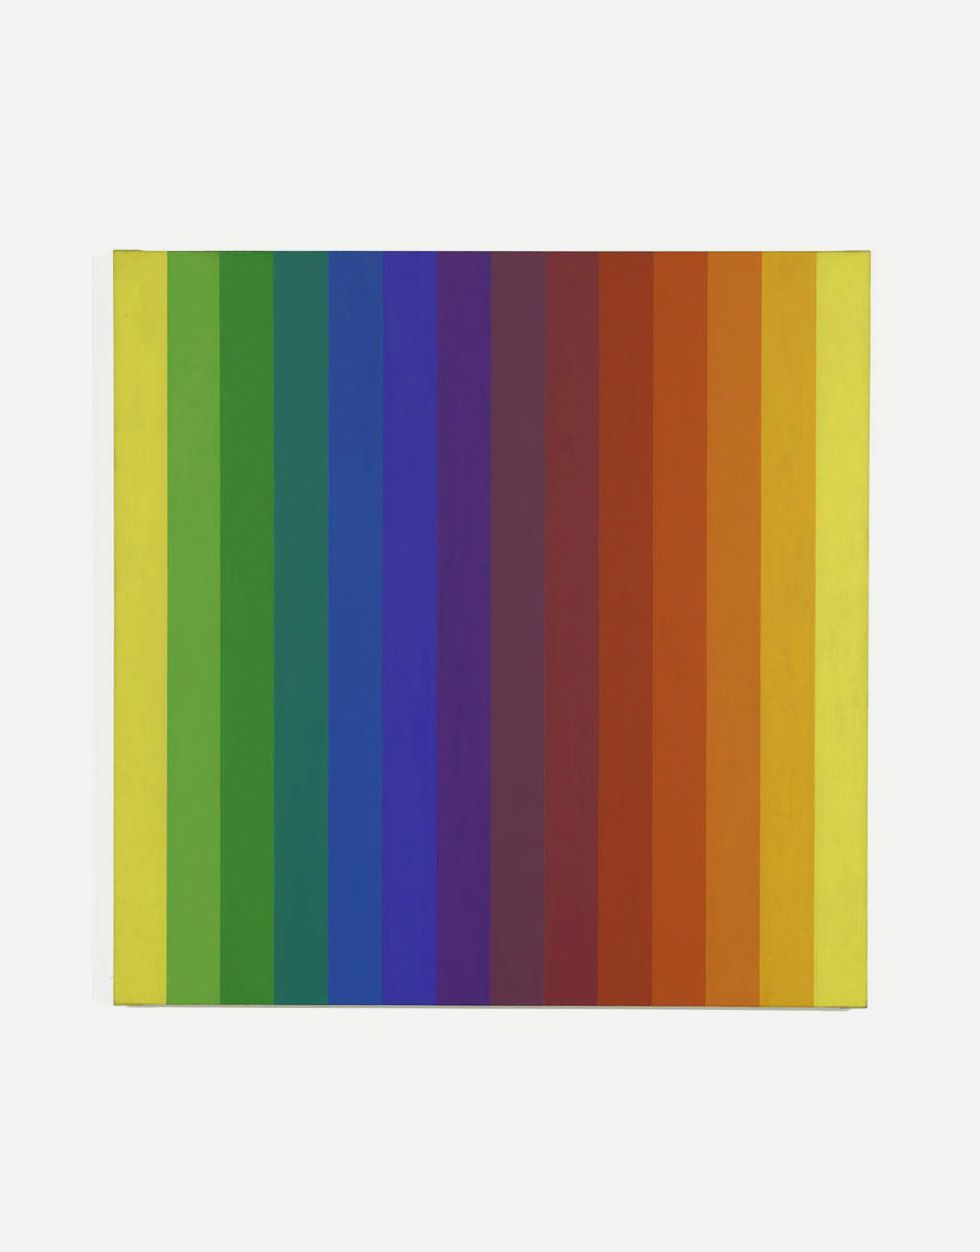 #jwbgraphic Spectrum 1953 Ellsworth Kelly. Art